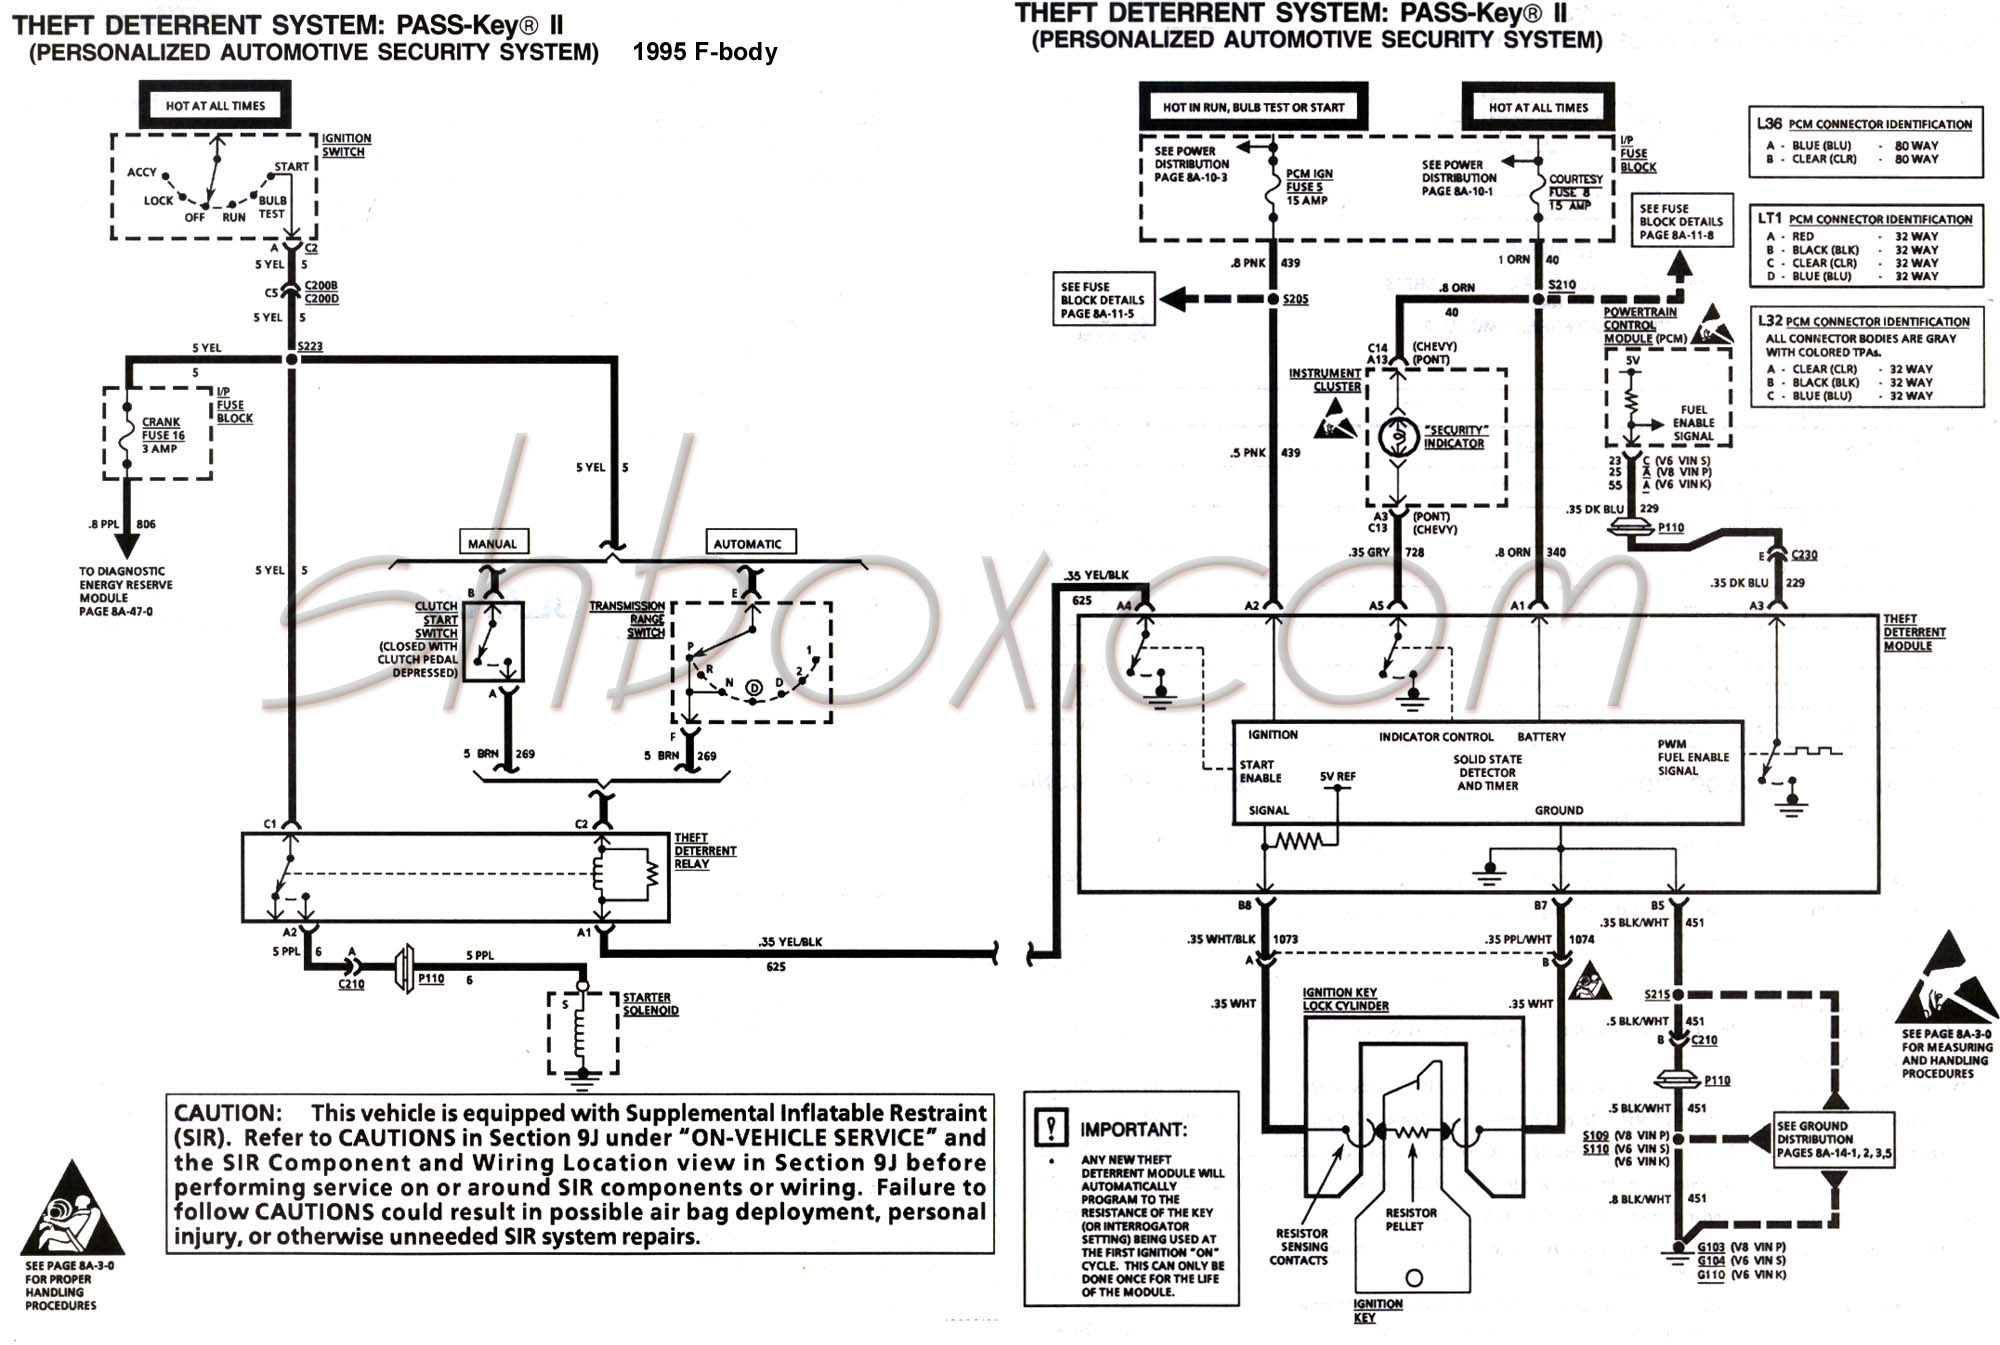 P 0996b43f80cb4205 furthermore 7c3nf Chevy Malibu Classic Fuel Pump Relay Switch Located as well Chevy 350 5 7 Tbi Engine Diagram together with 8100 harness additionally 93 Chevy S10 Blazer Wiring Diagram. on ignition wiring diagram 2000 chevy silverado